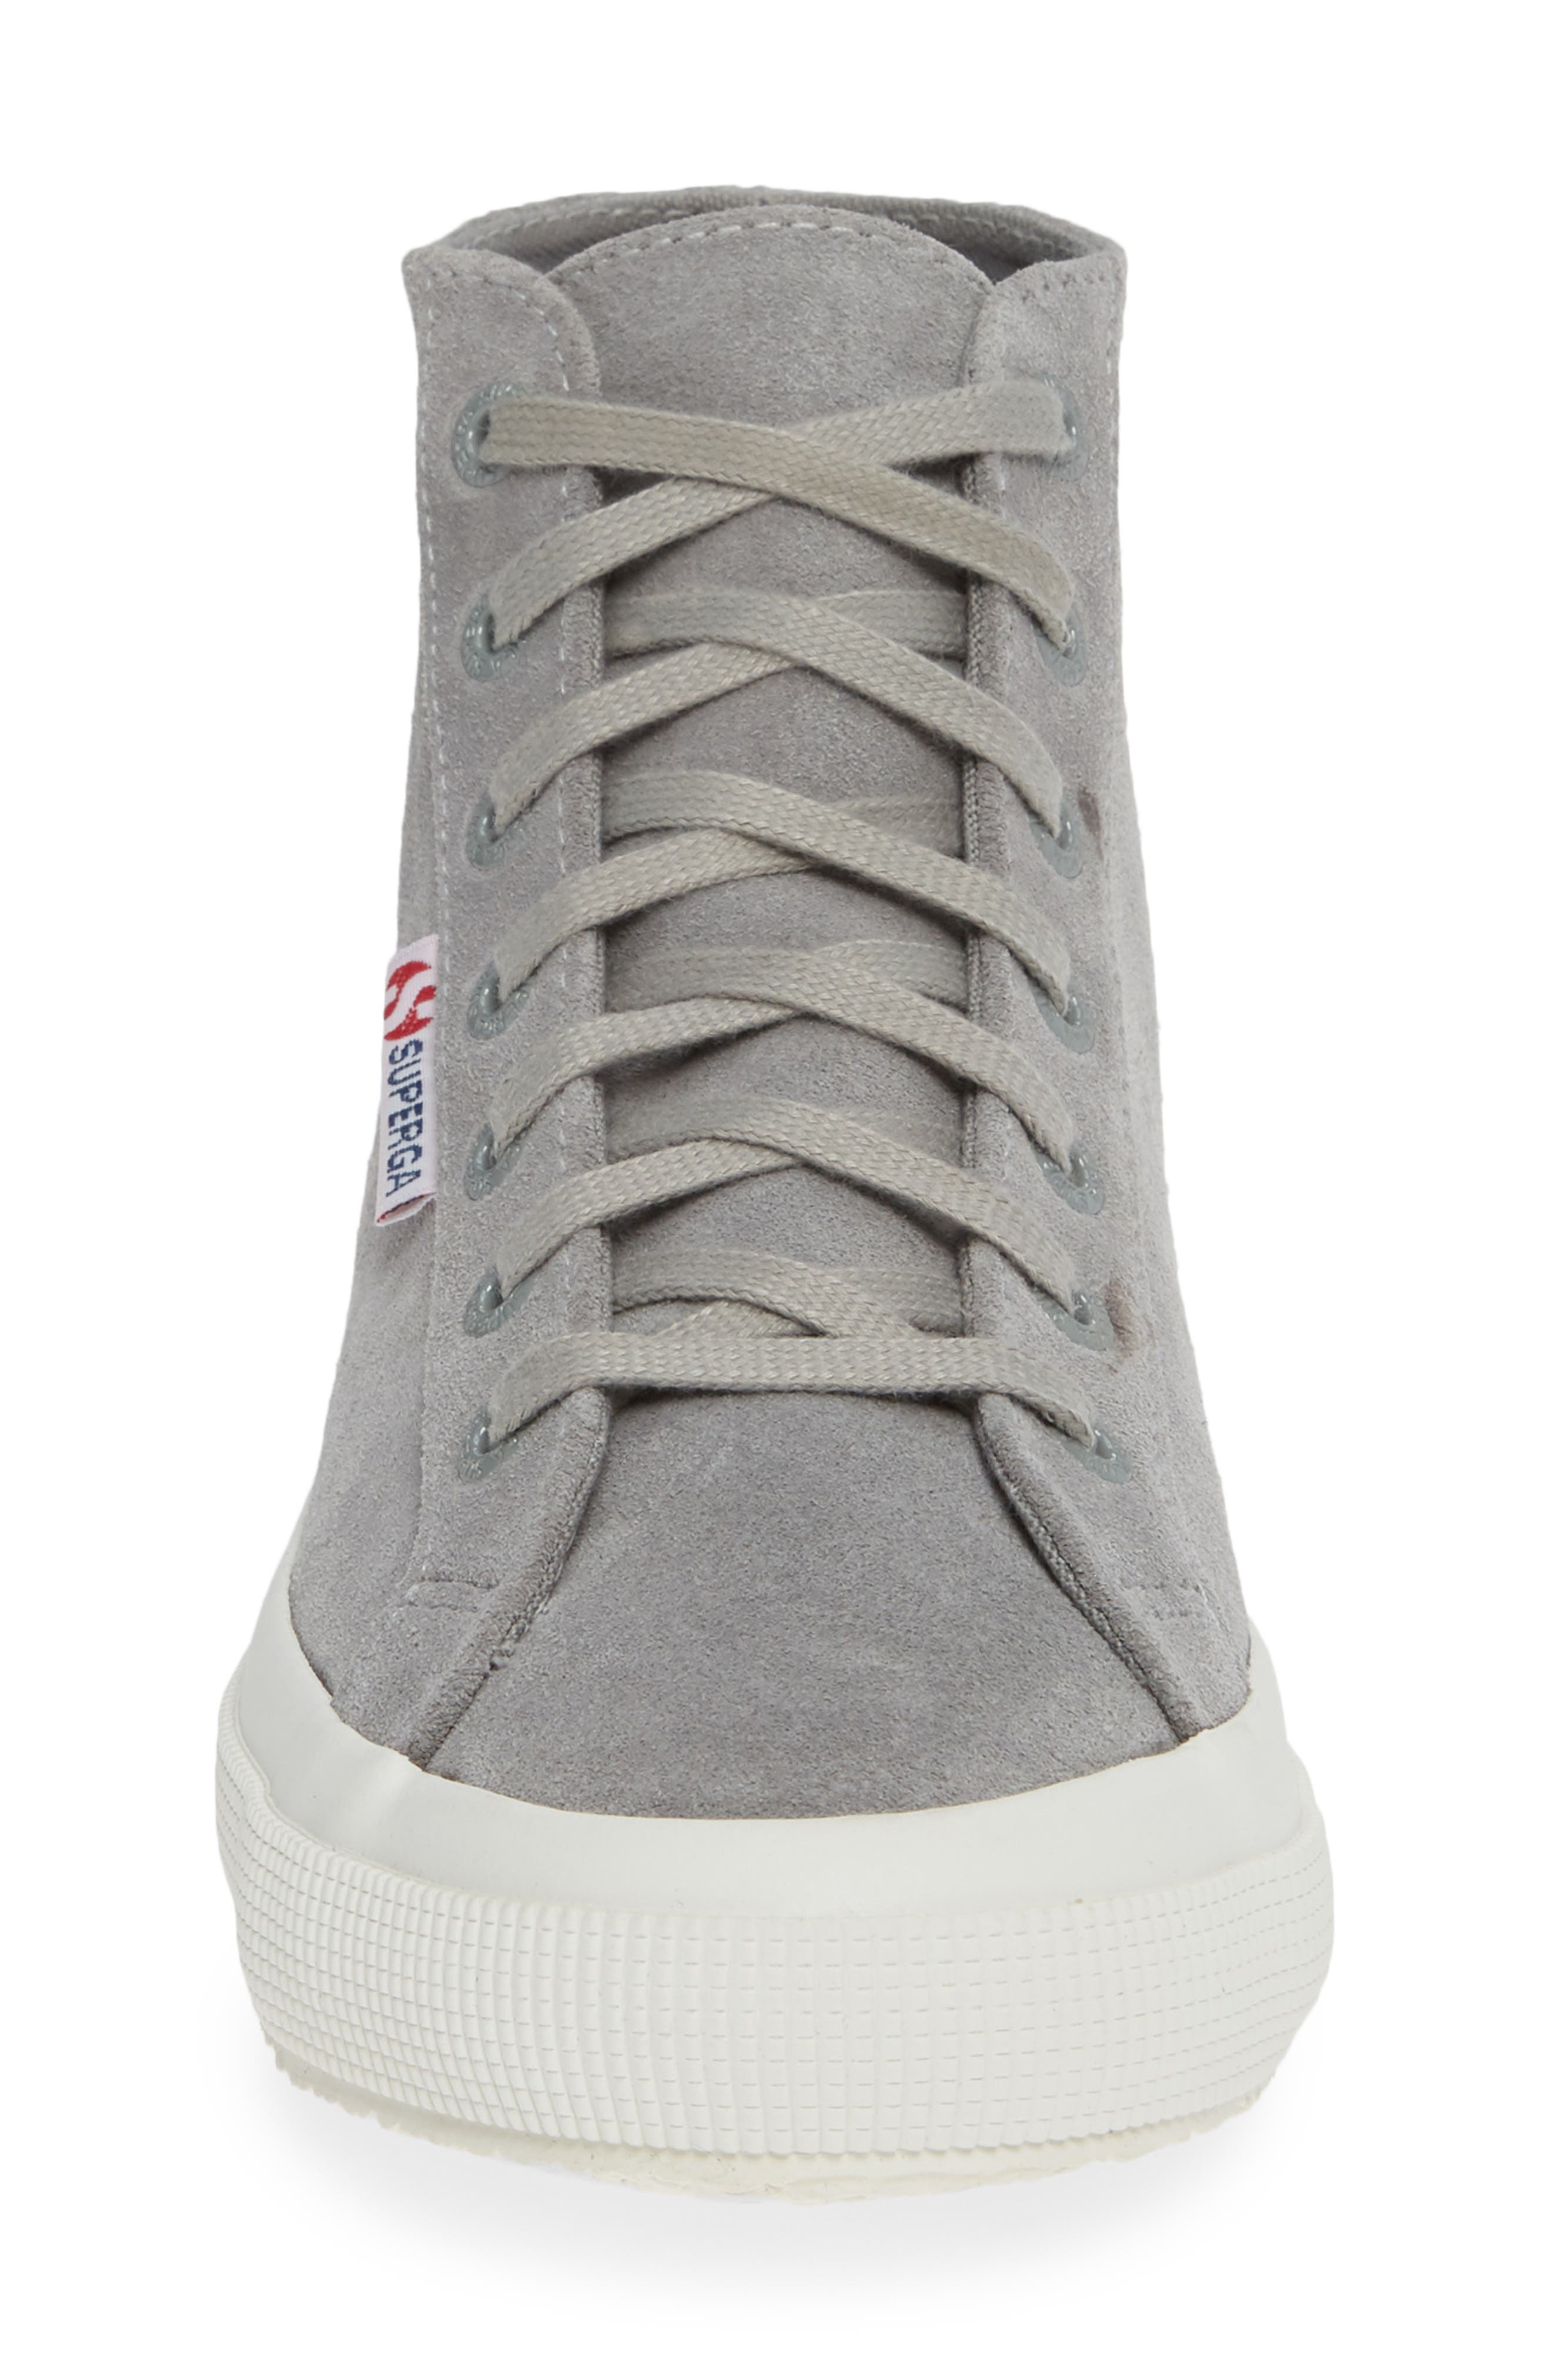 2795 High Top Sneaker,                             Alternate thumbnail 4, color,                             020